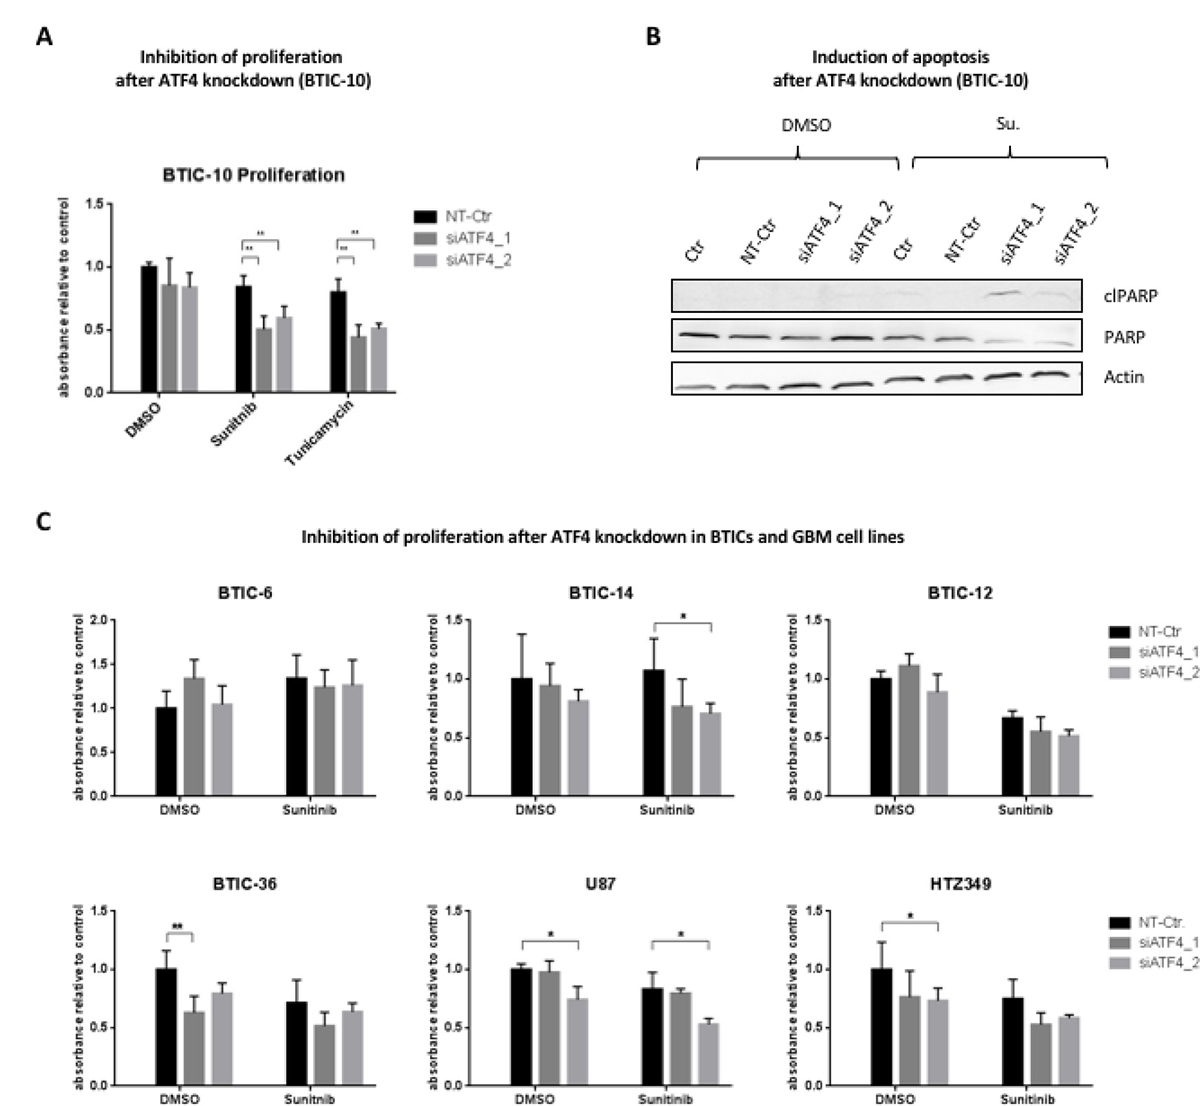 Influence of ATF4 knockdown on proliferation and apoptosis.